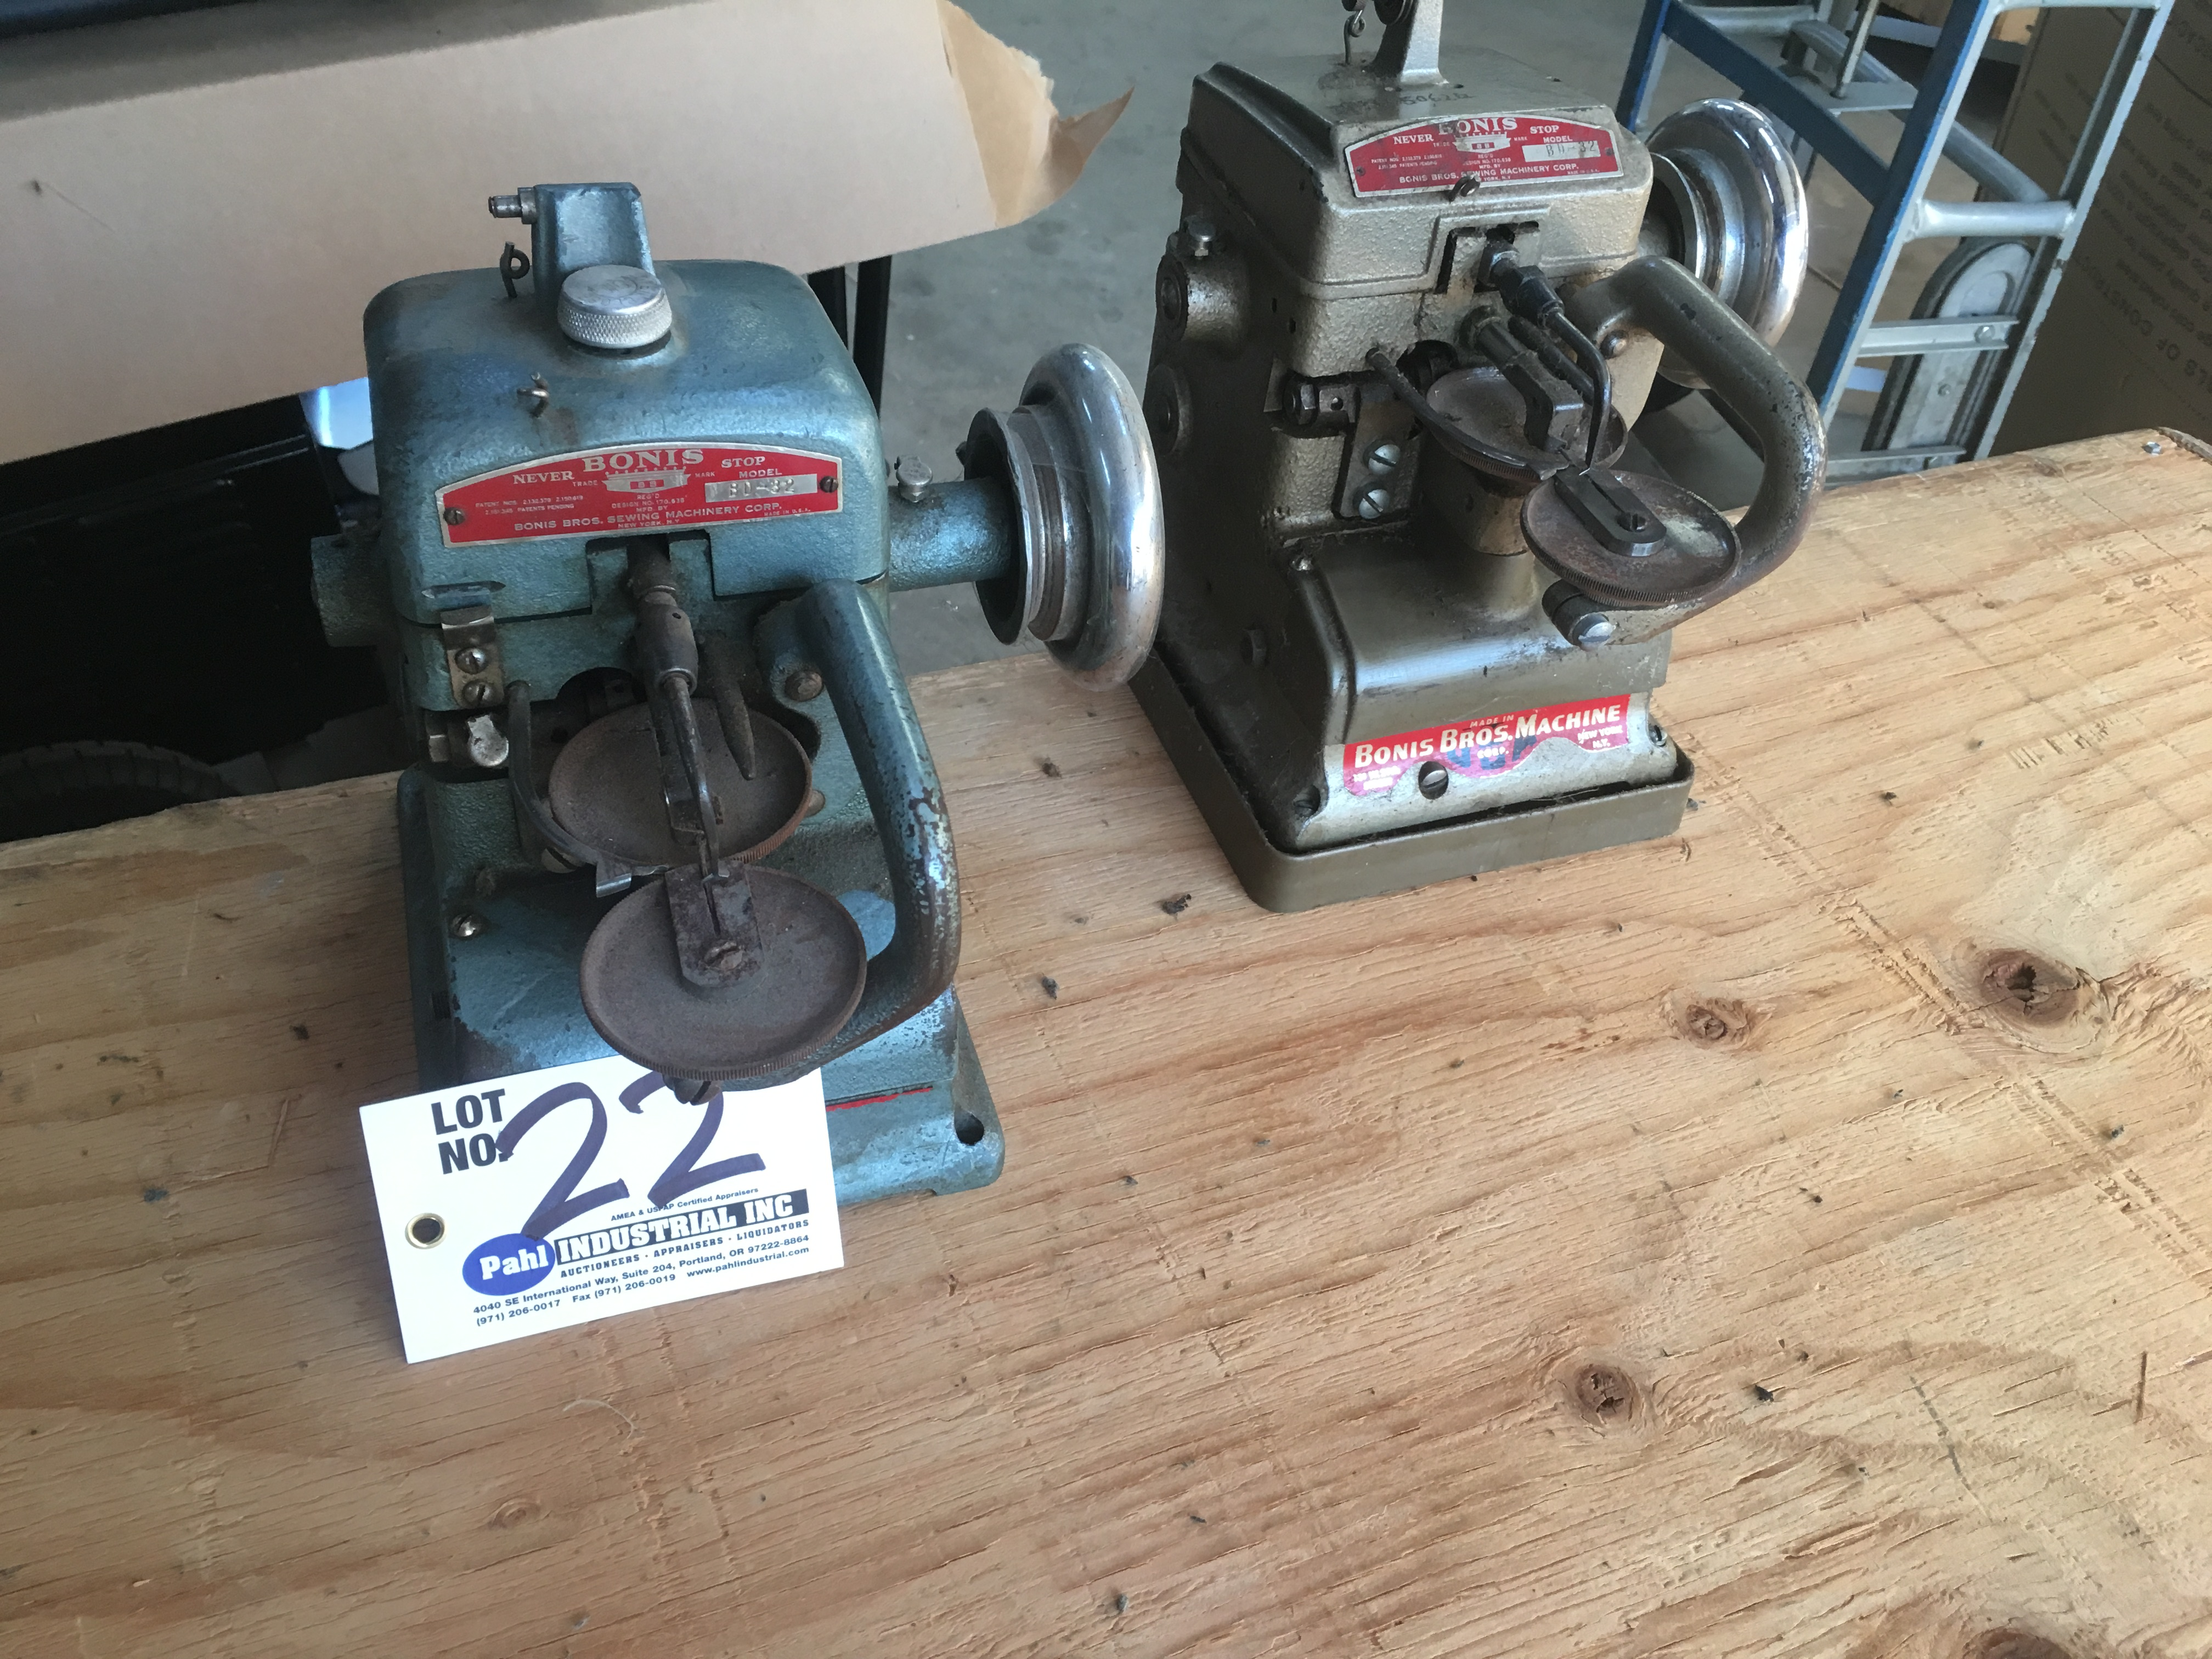 Lot 22 - (2) Bonis BD-32 Fur Sewing machines (not known if operational)